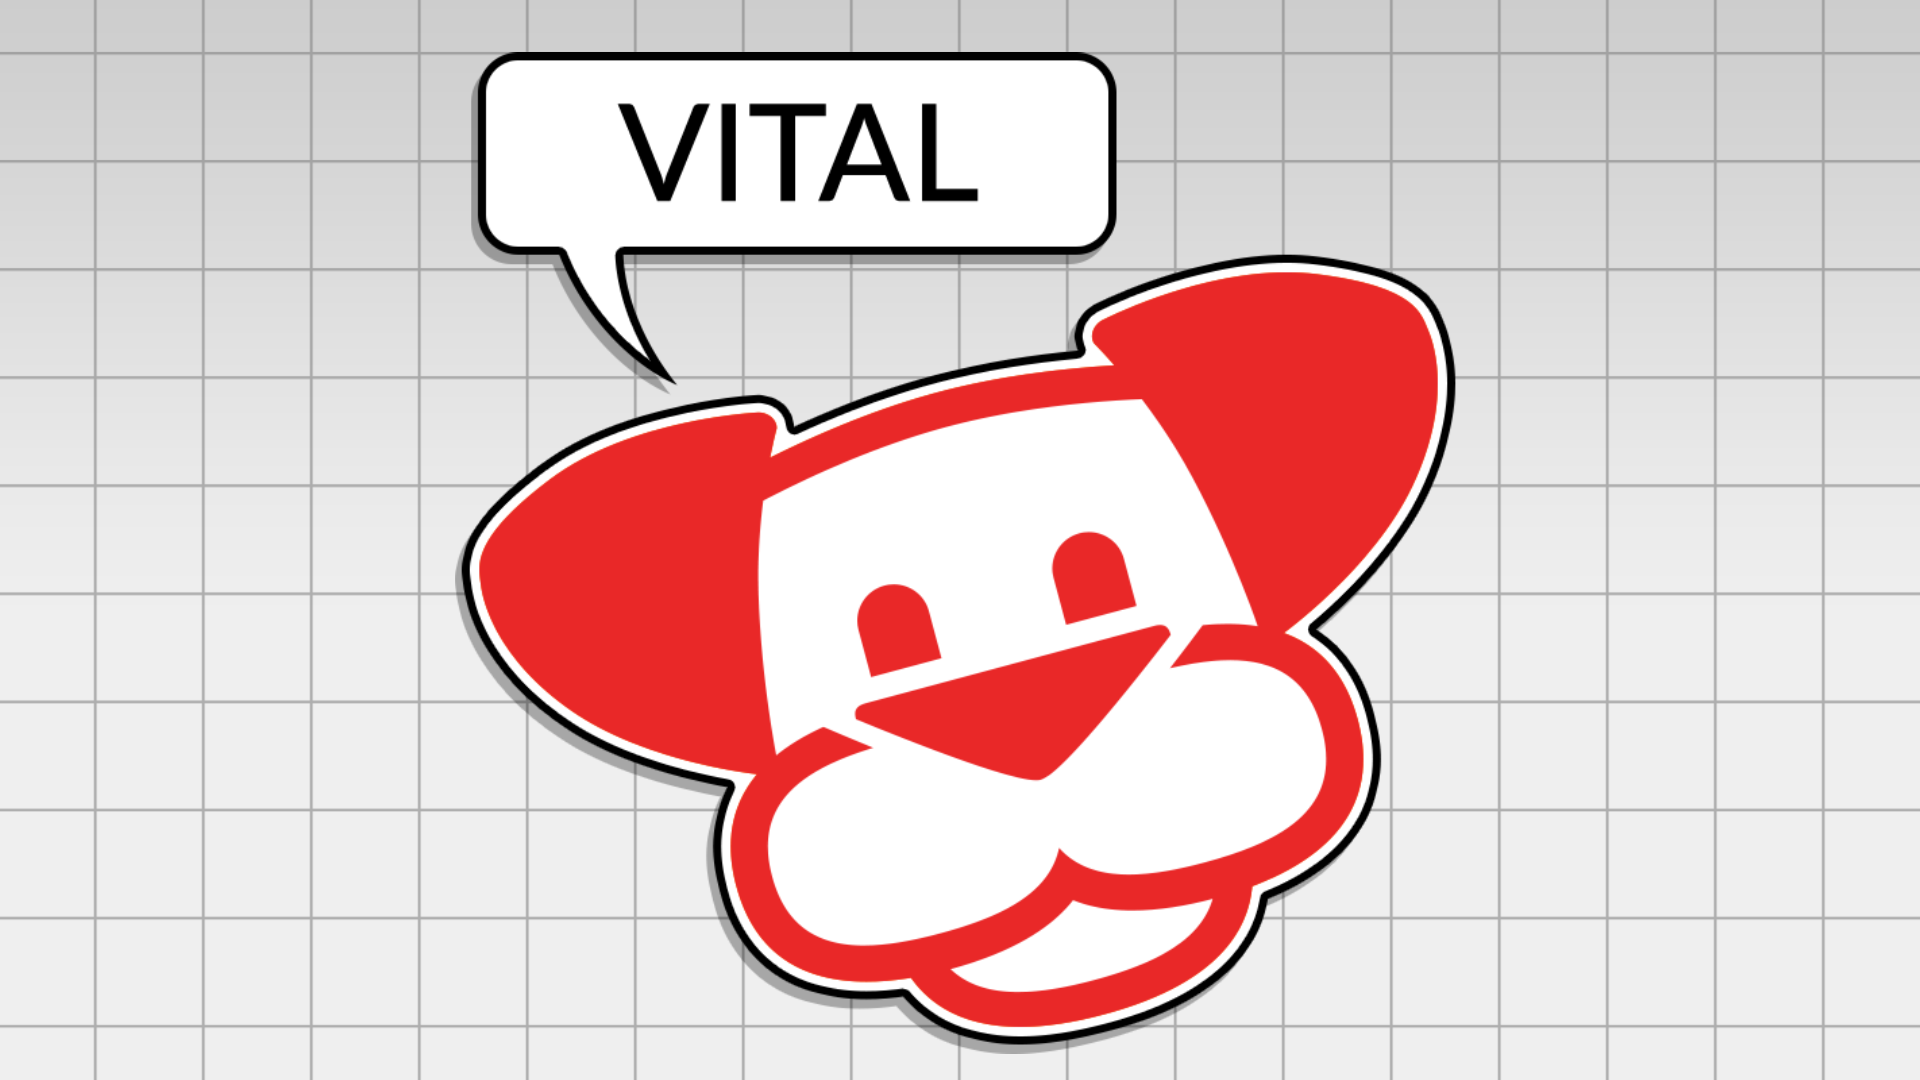 Icon for VITAL Functions